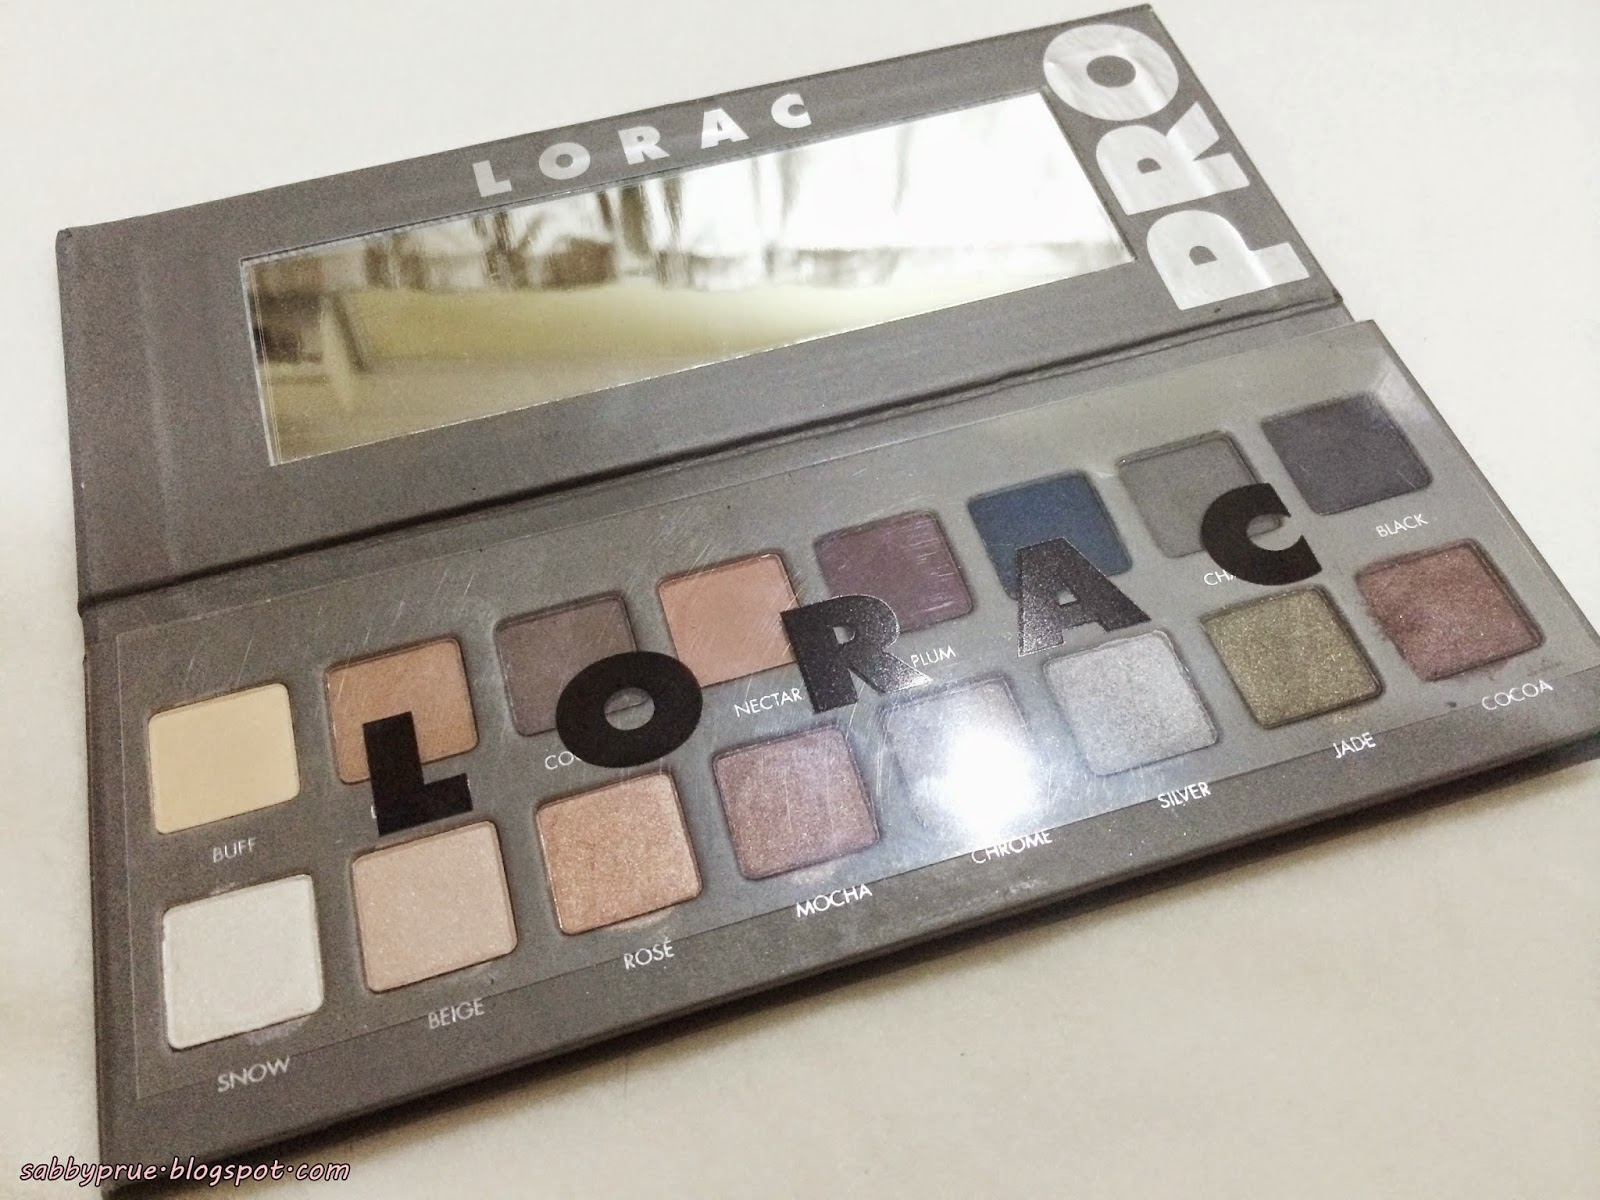 The LORAC Pro Palette 2 es with 16 eye shadows that is divided equally into 2 types of eye shadows which are matte and shimmer eye shadows